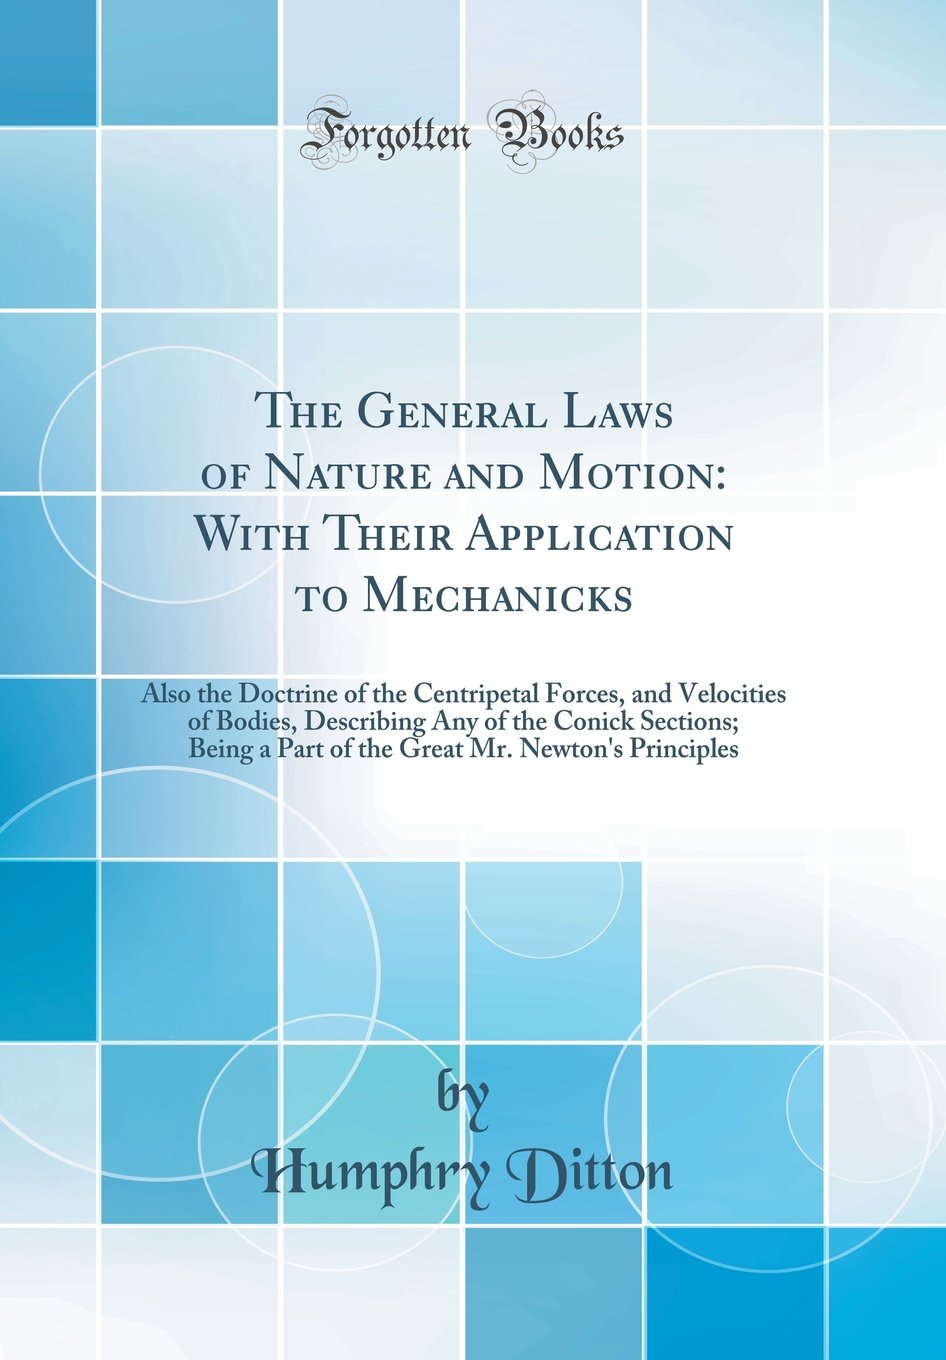 Download The General Laws of Nature and Motion: With Their Application to Mechanicks: Also the Doctrine of the Centripetal Forces, and Velocities of Bodies, ... Mr. Newton's Principles (Classic Reprint) ebook